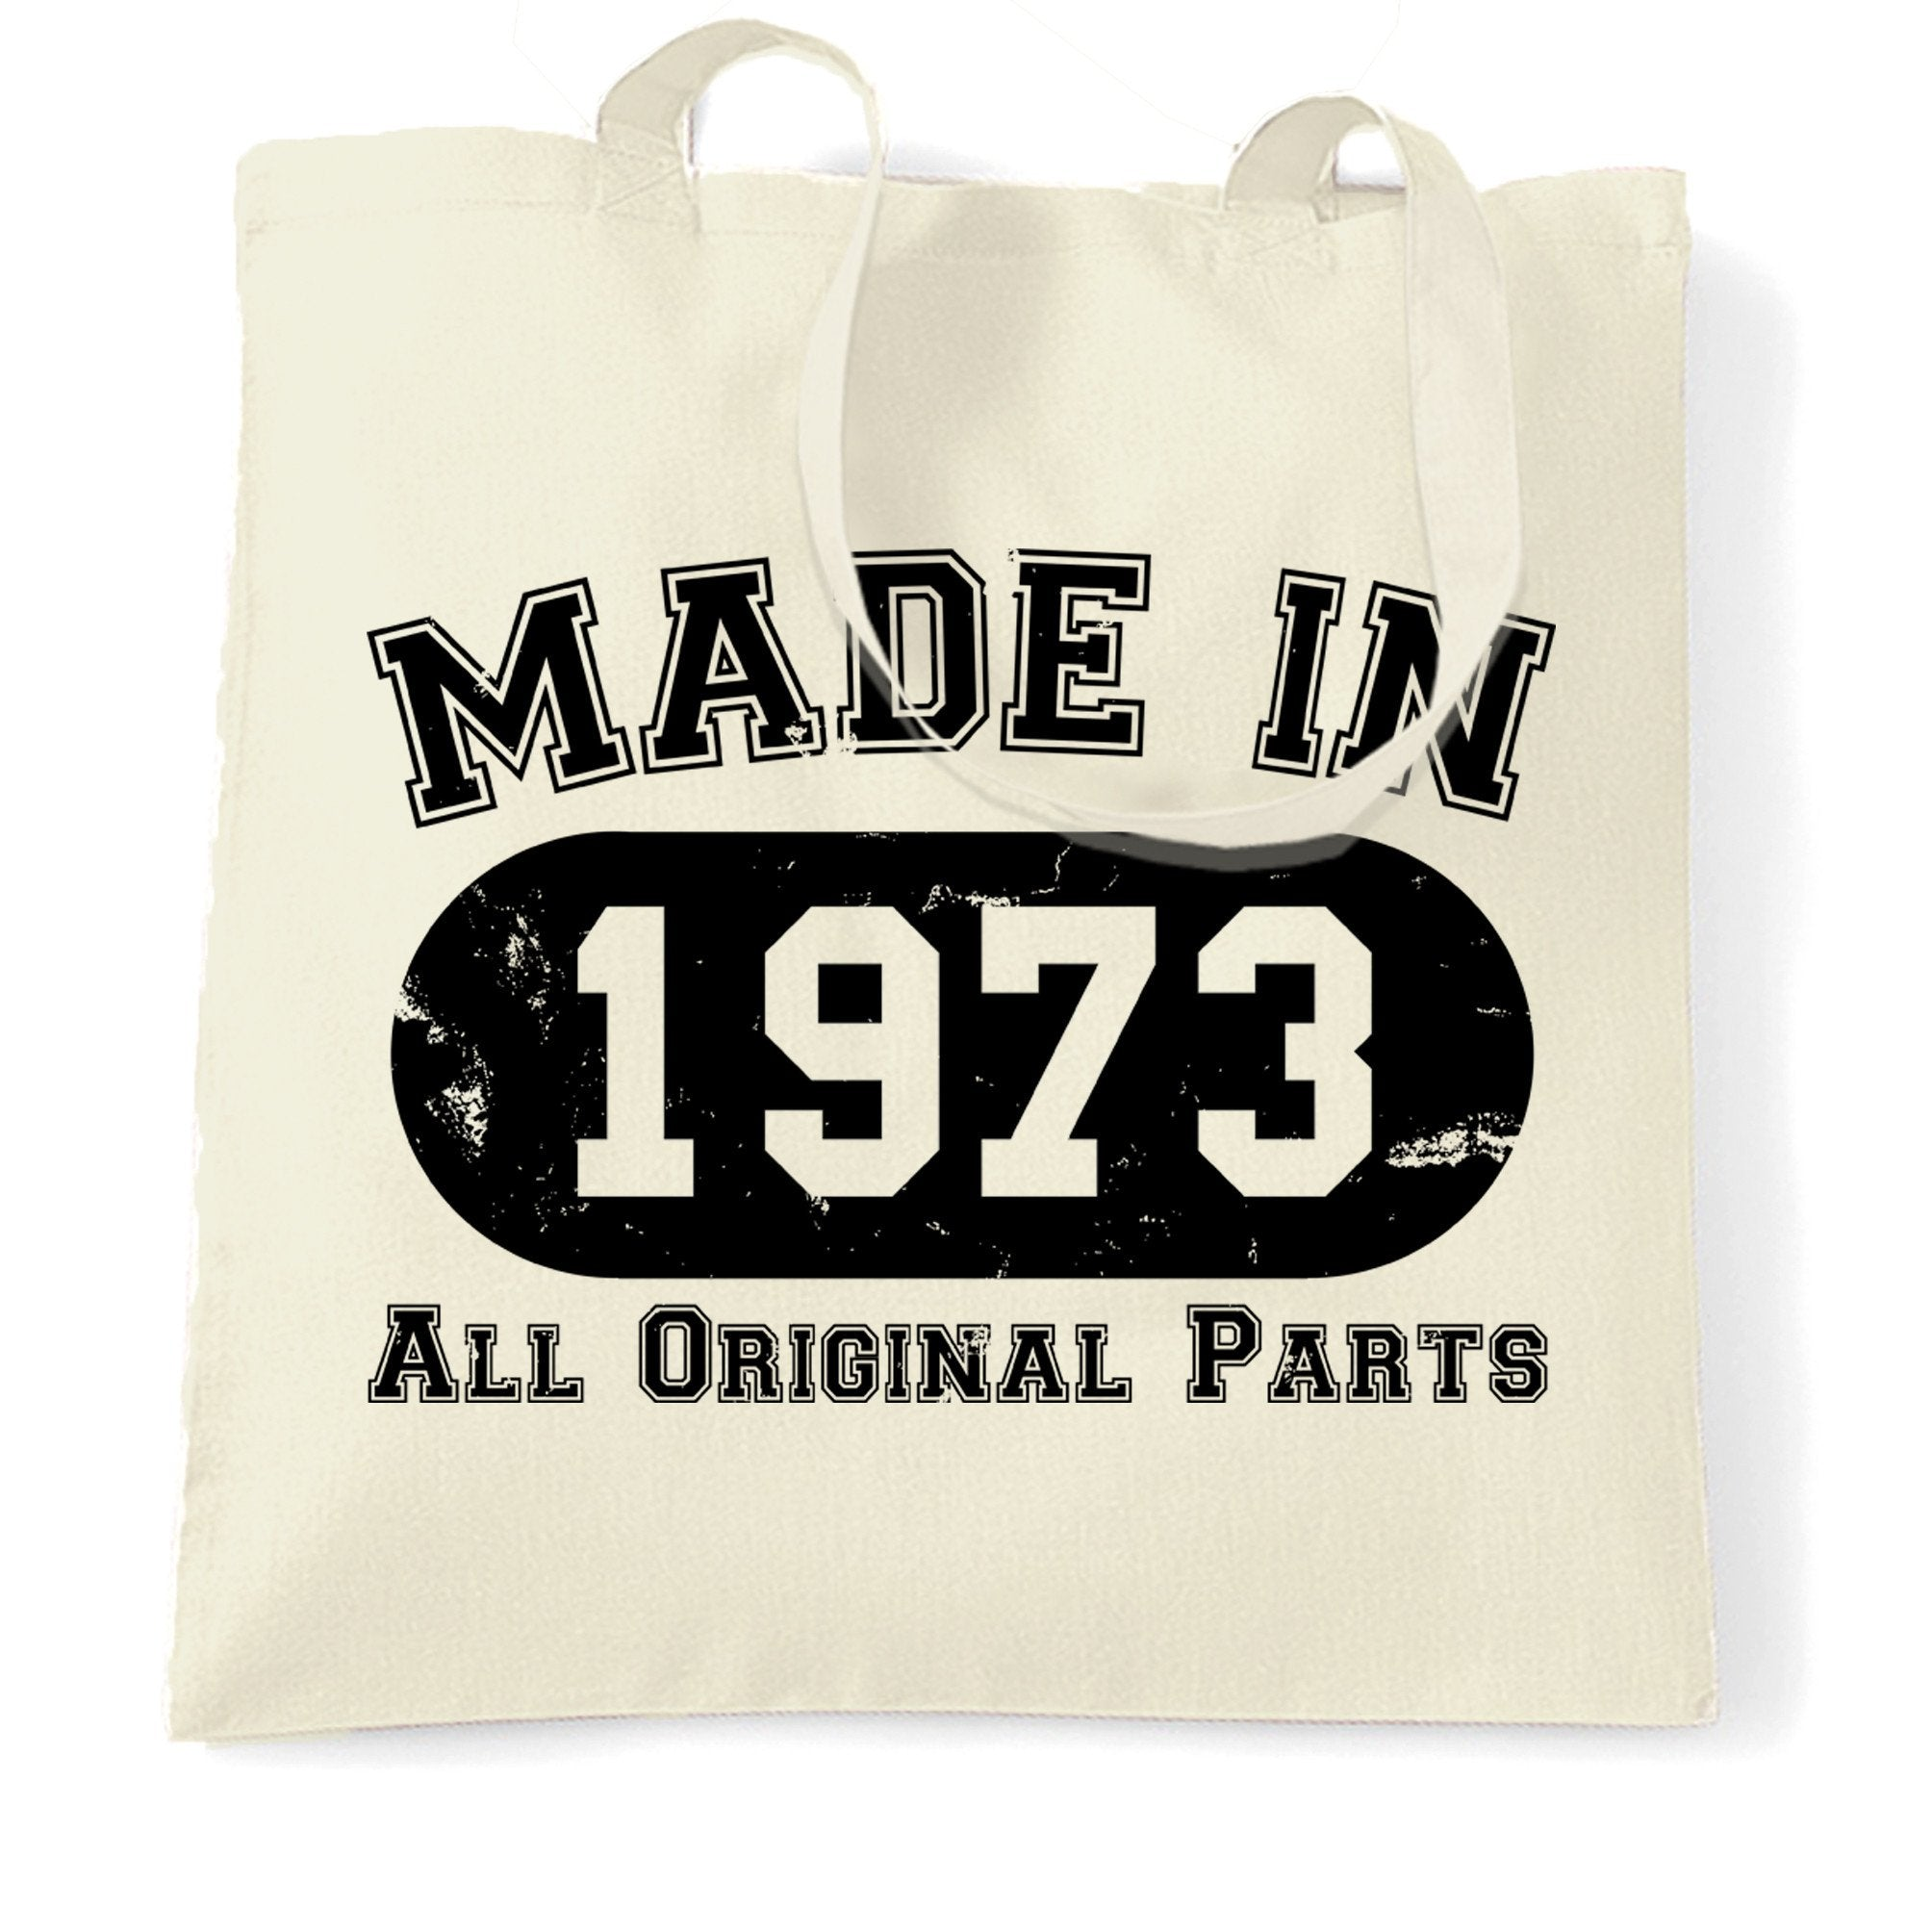 Made in 1973 All Original Parts Tote Bag [Distressed]